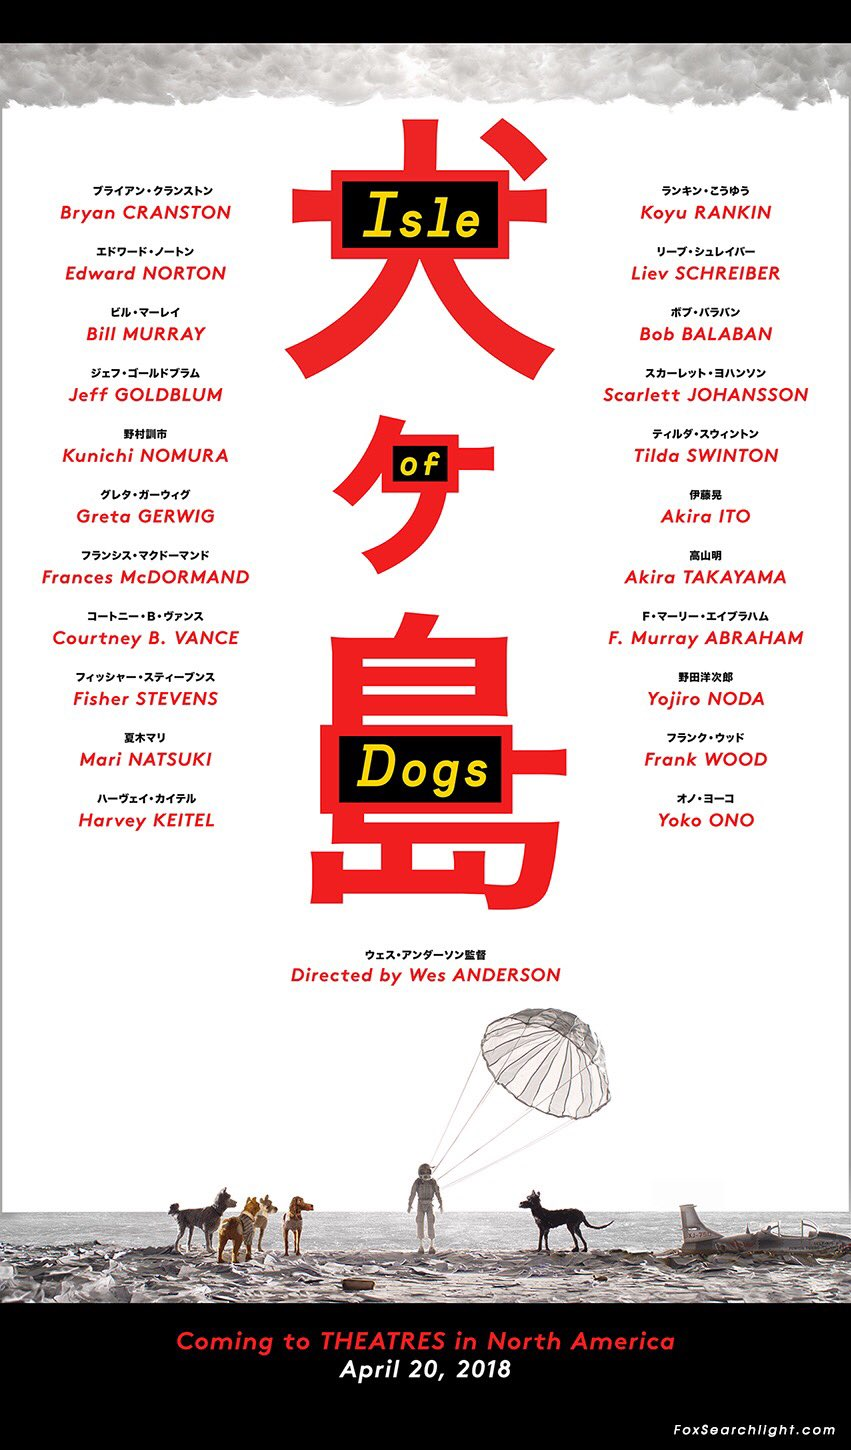 Here's the first poster for Wes Anderson's next film, Isle of Dogs. There's a lot to unpack here... https://t.co/5Ax2cquUG5